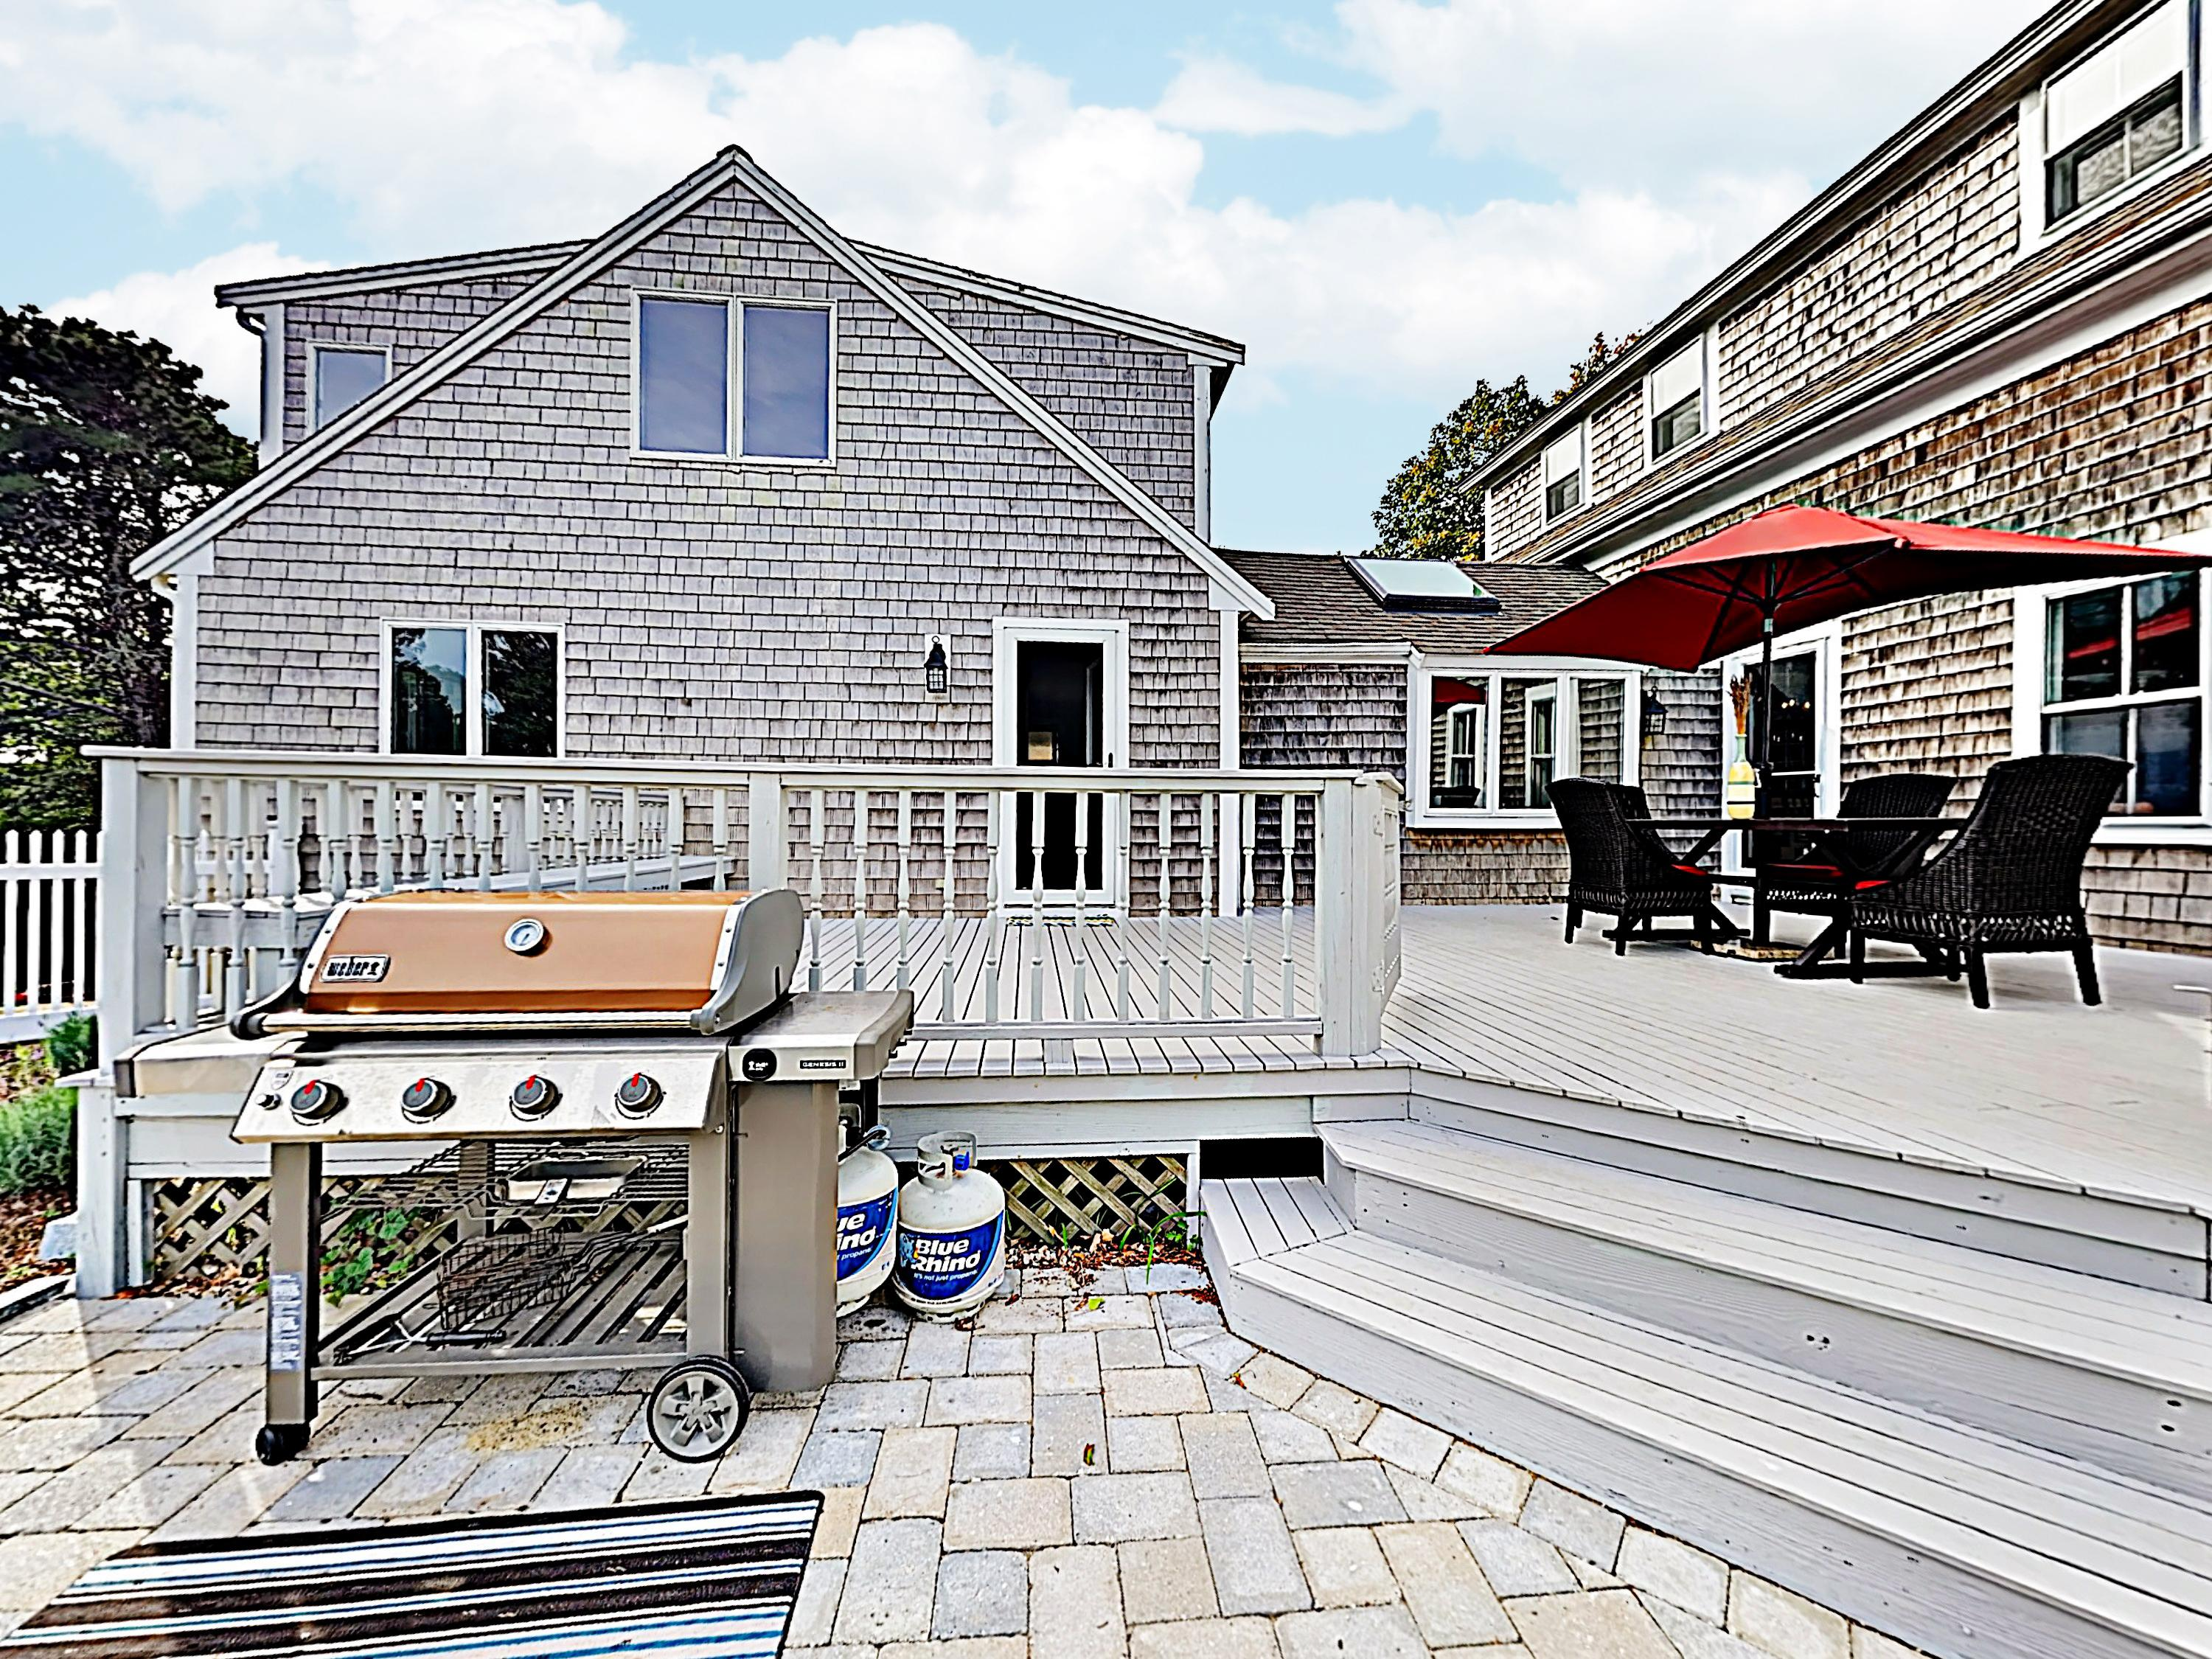 After a day of outdoor adventures, unwind on the deck and fire up the grill for a family barbeque.